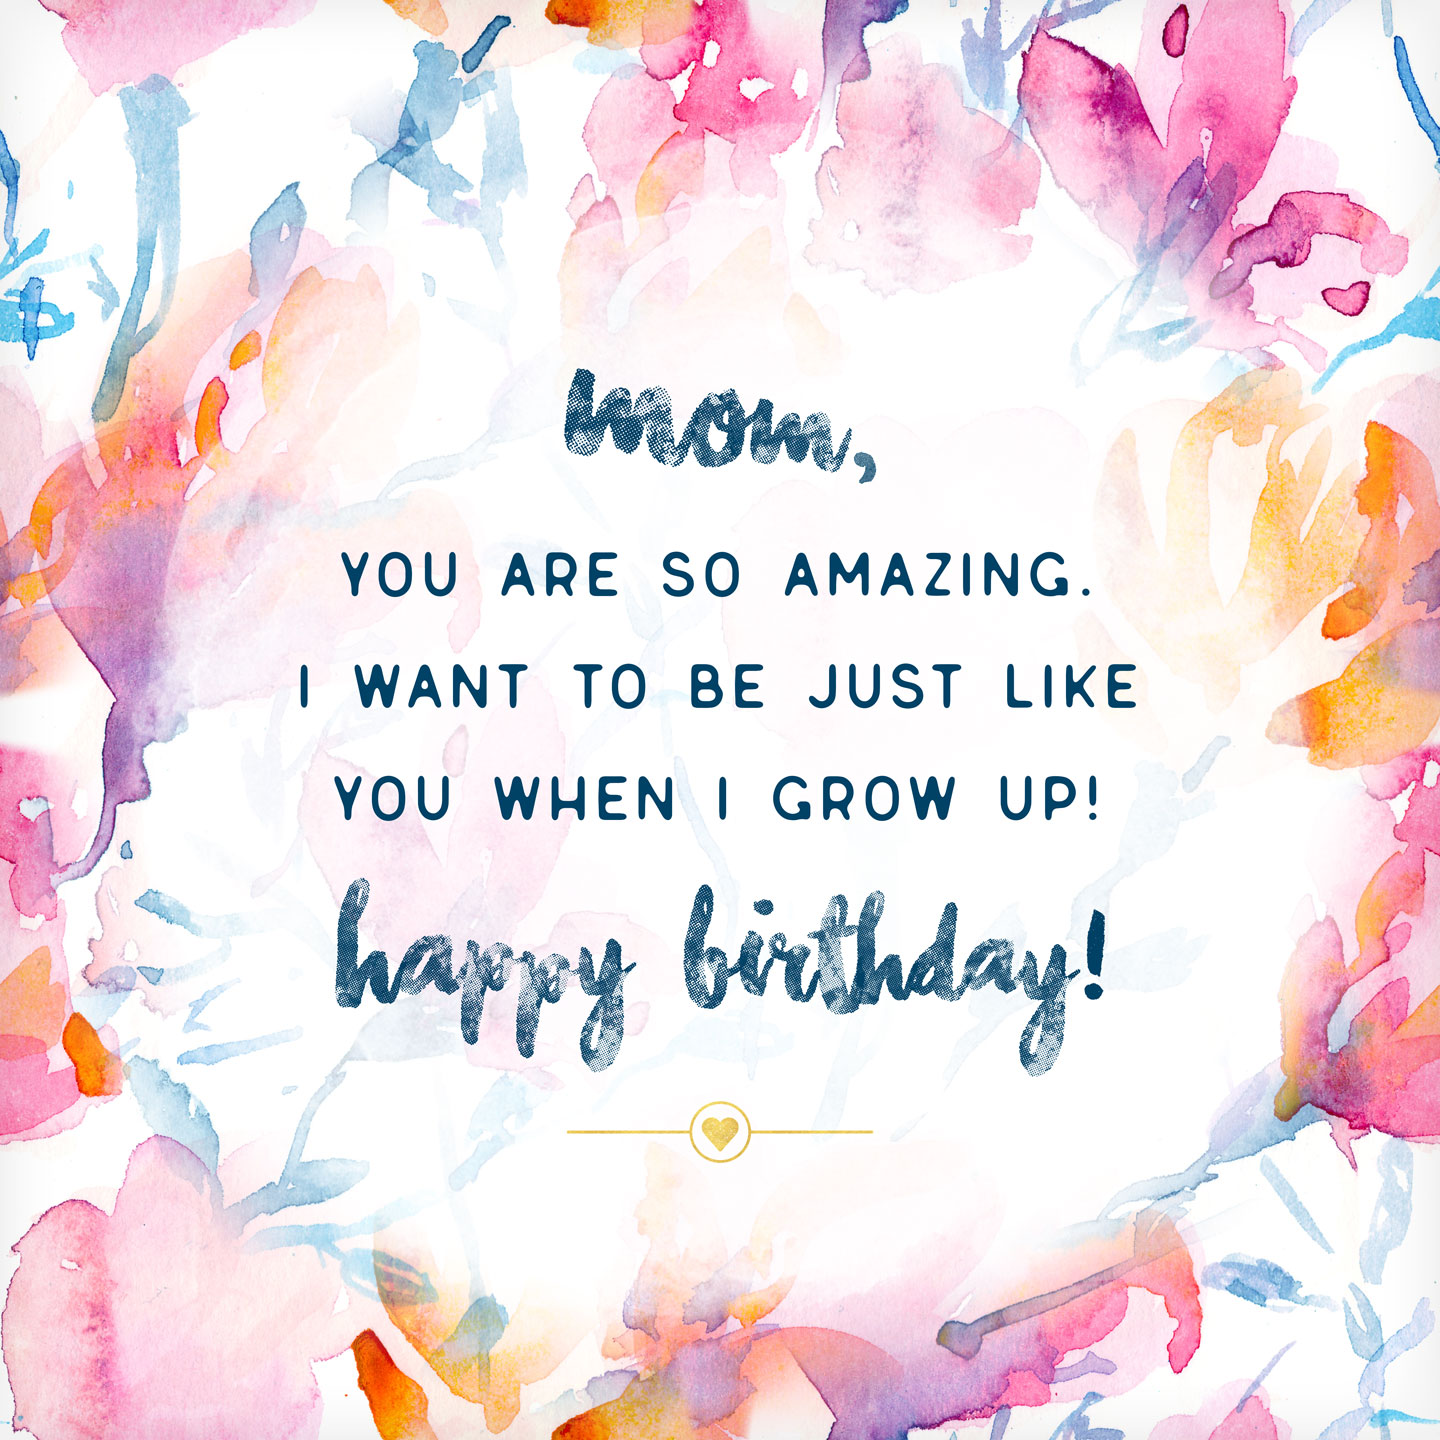 birthday card love messages ; birthday-card-messages-mom